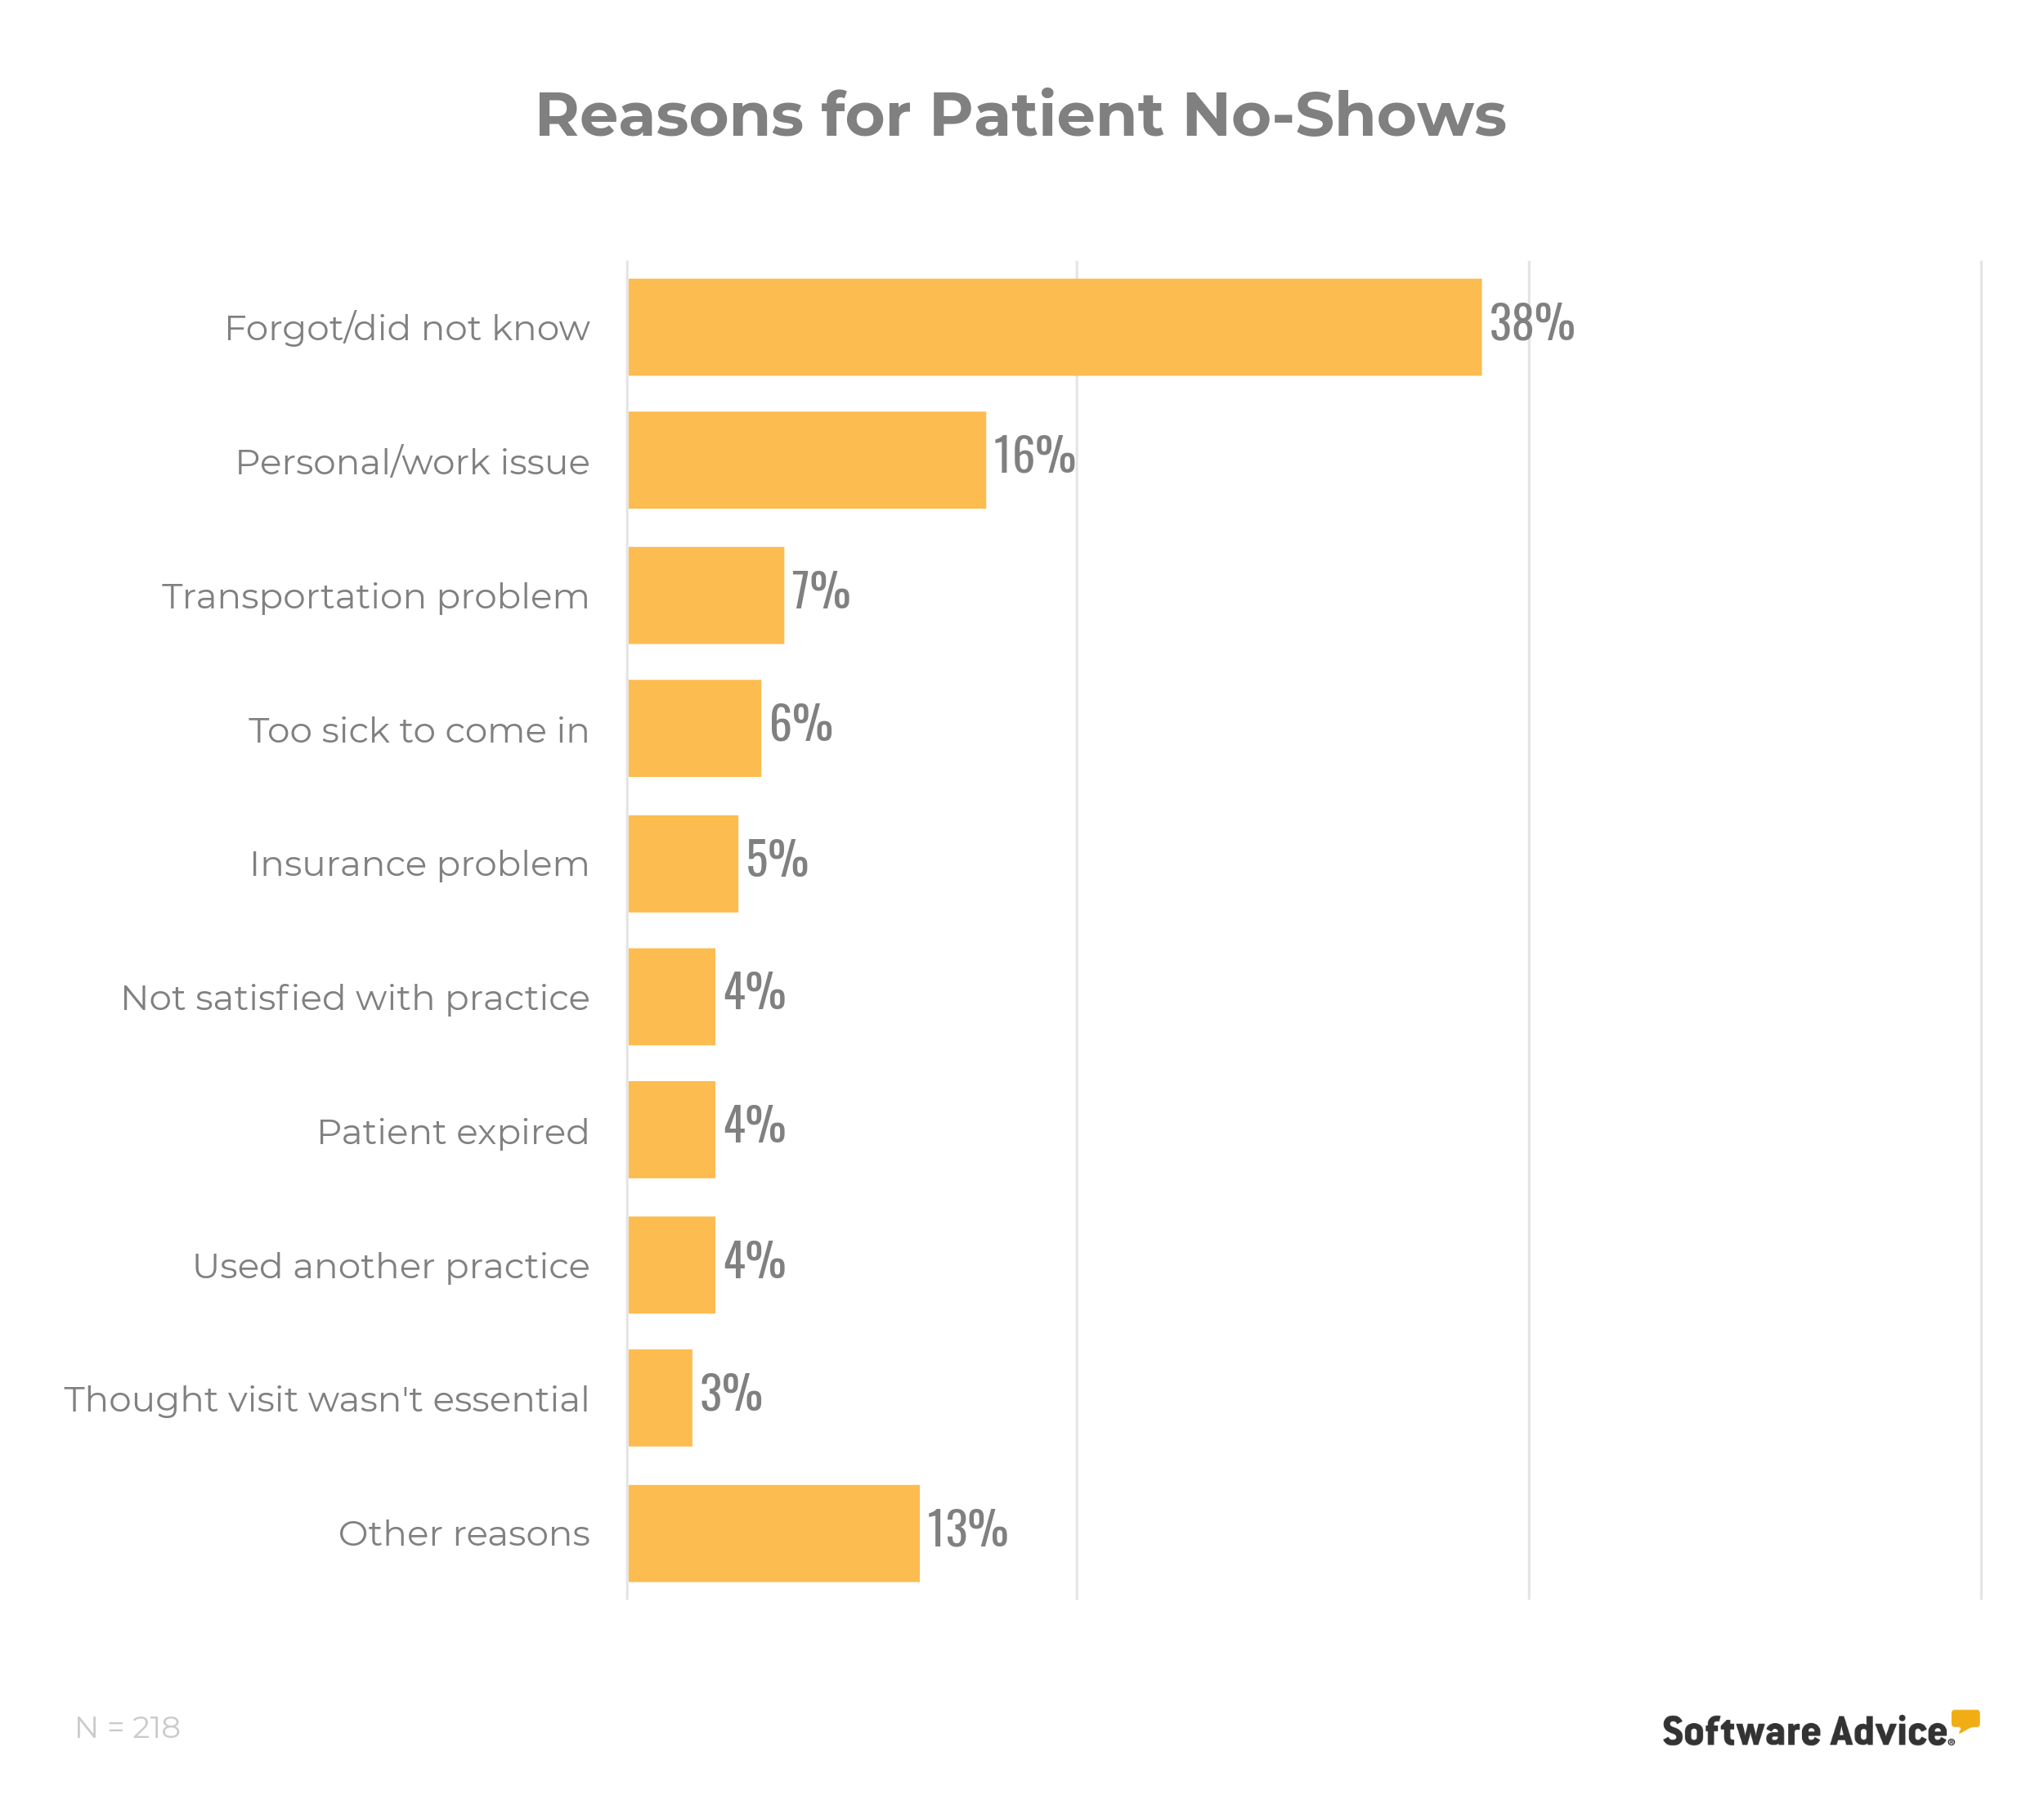 Reasons for patient no-shows graphic